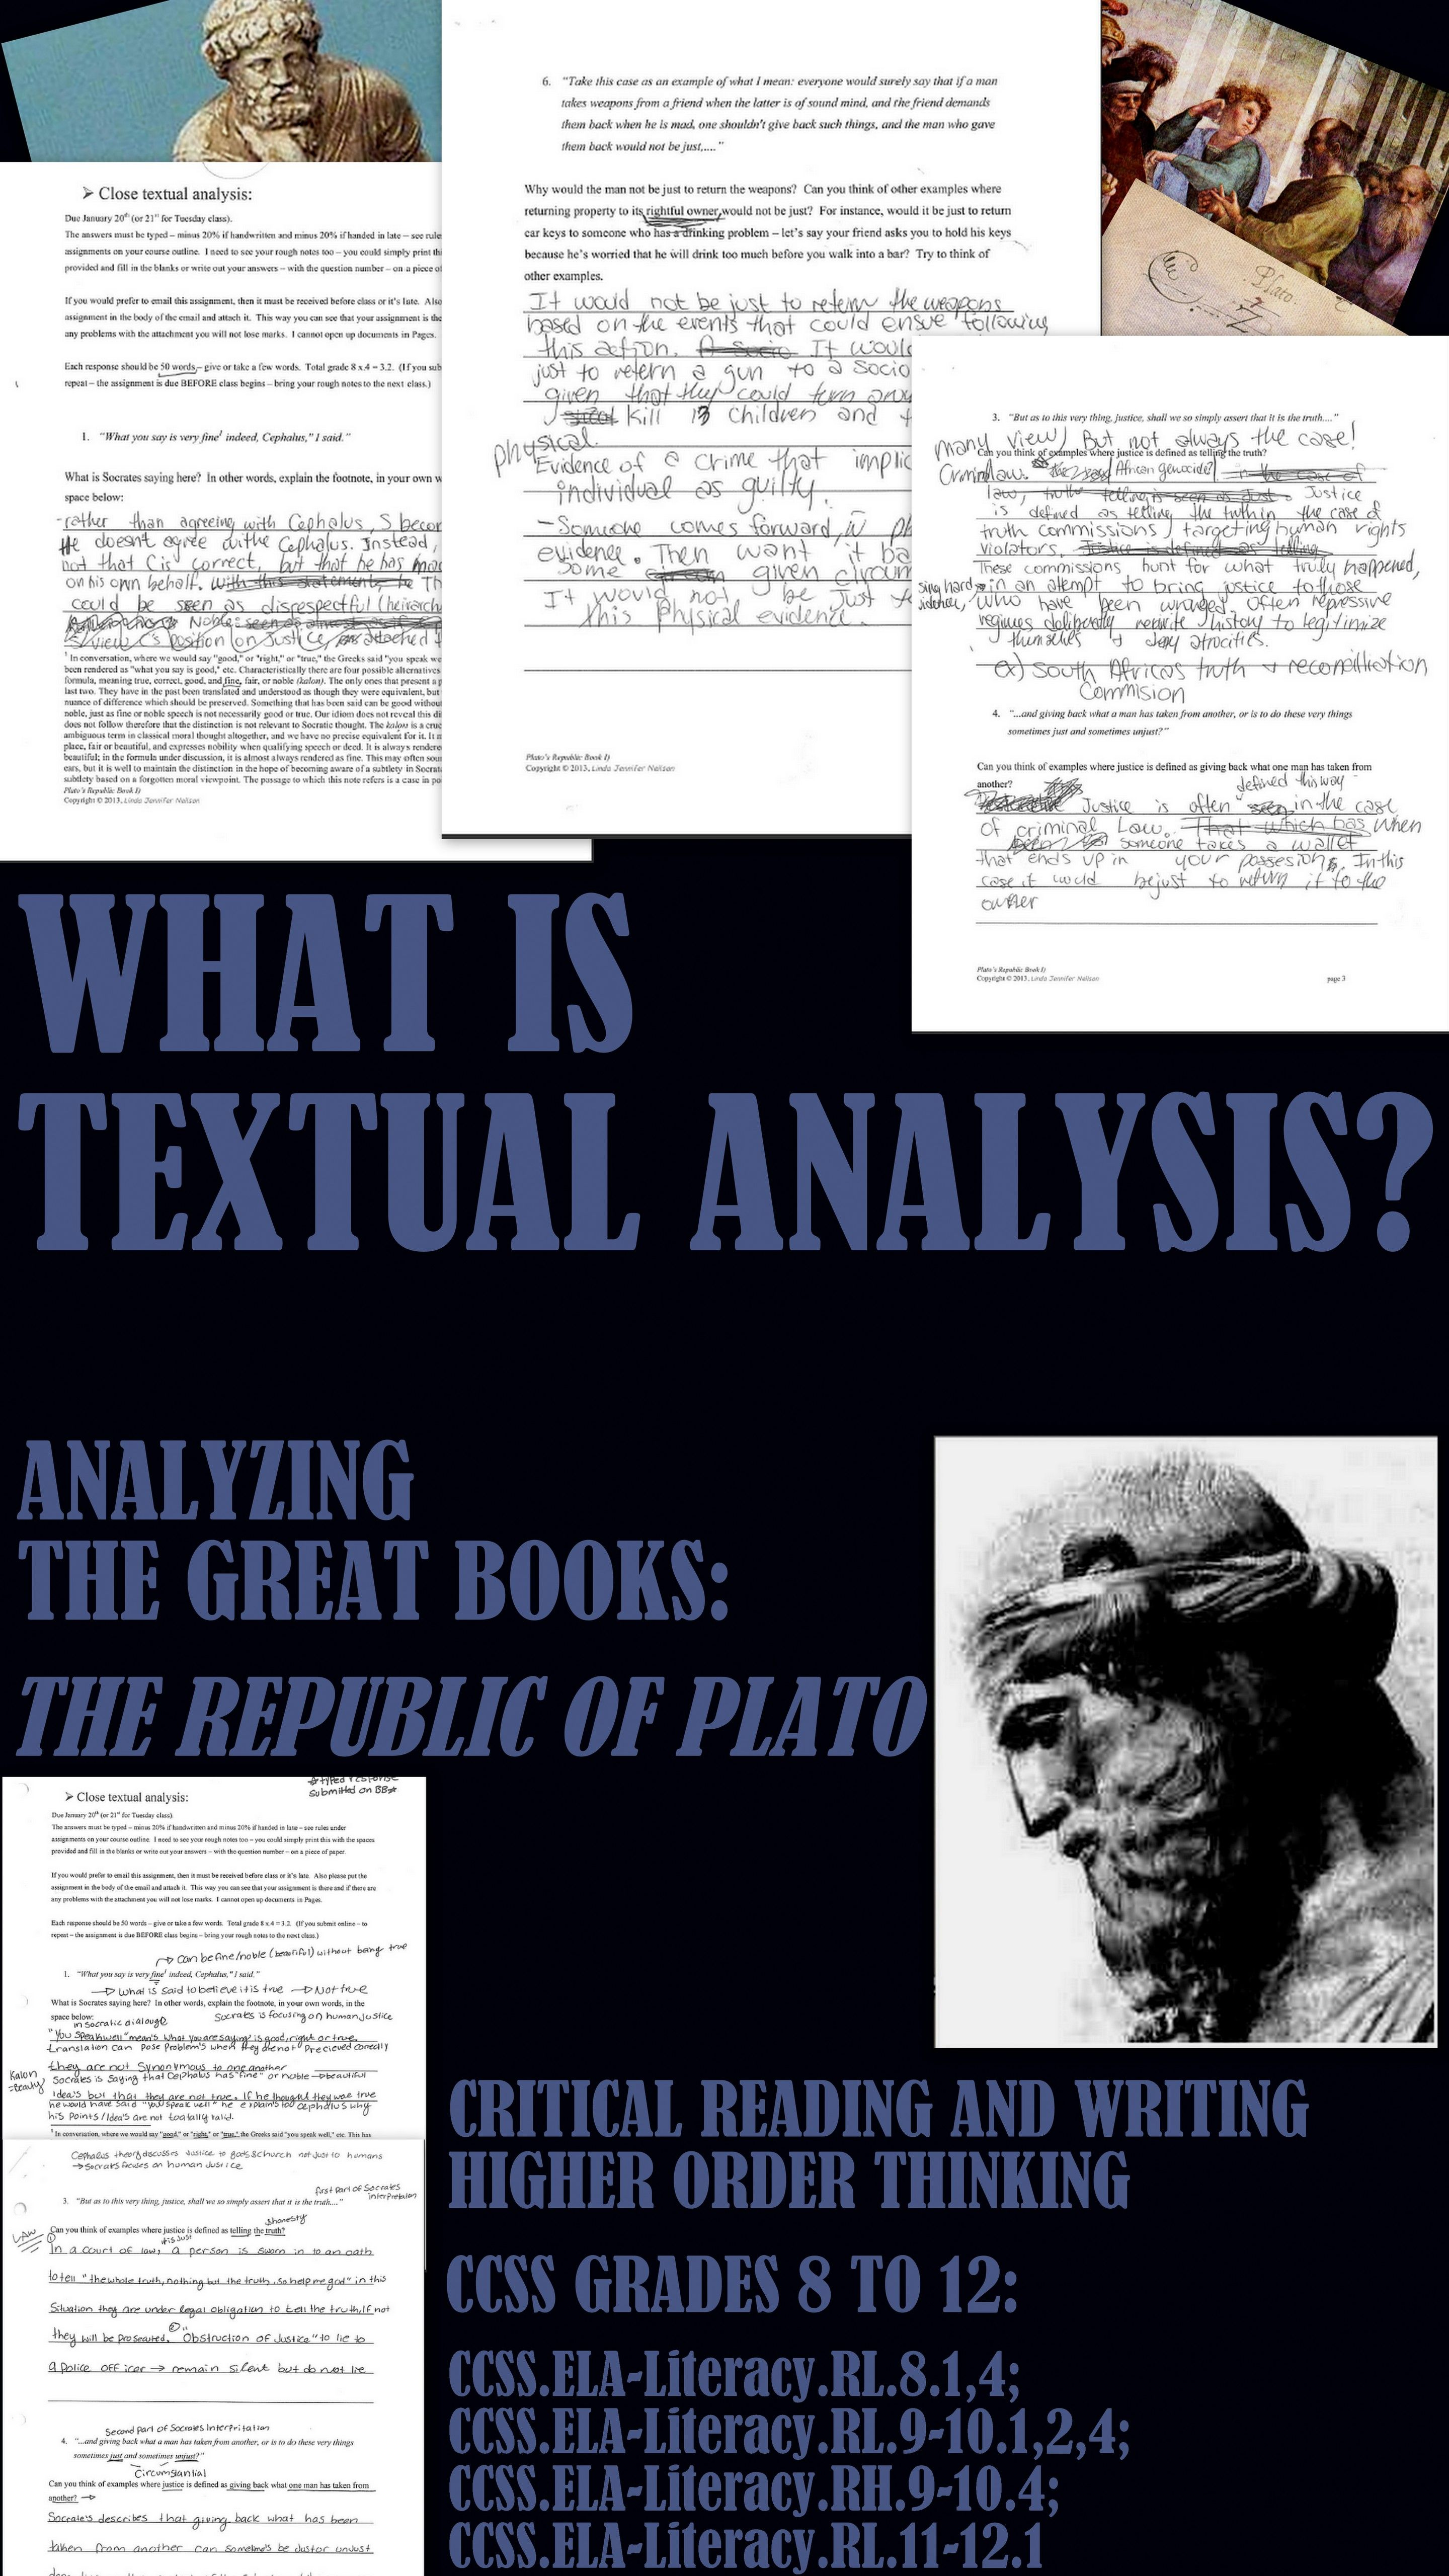 critical thinking tools of analysis Critical thinking and class analysis: historical materialism and social theory george c comninel introduction: marx, history and theory at the core of karl marx's contributions, both to politics and to our.